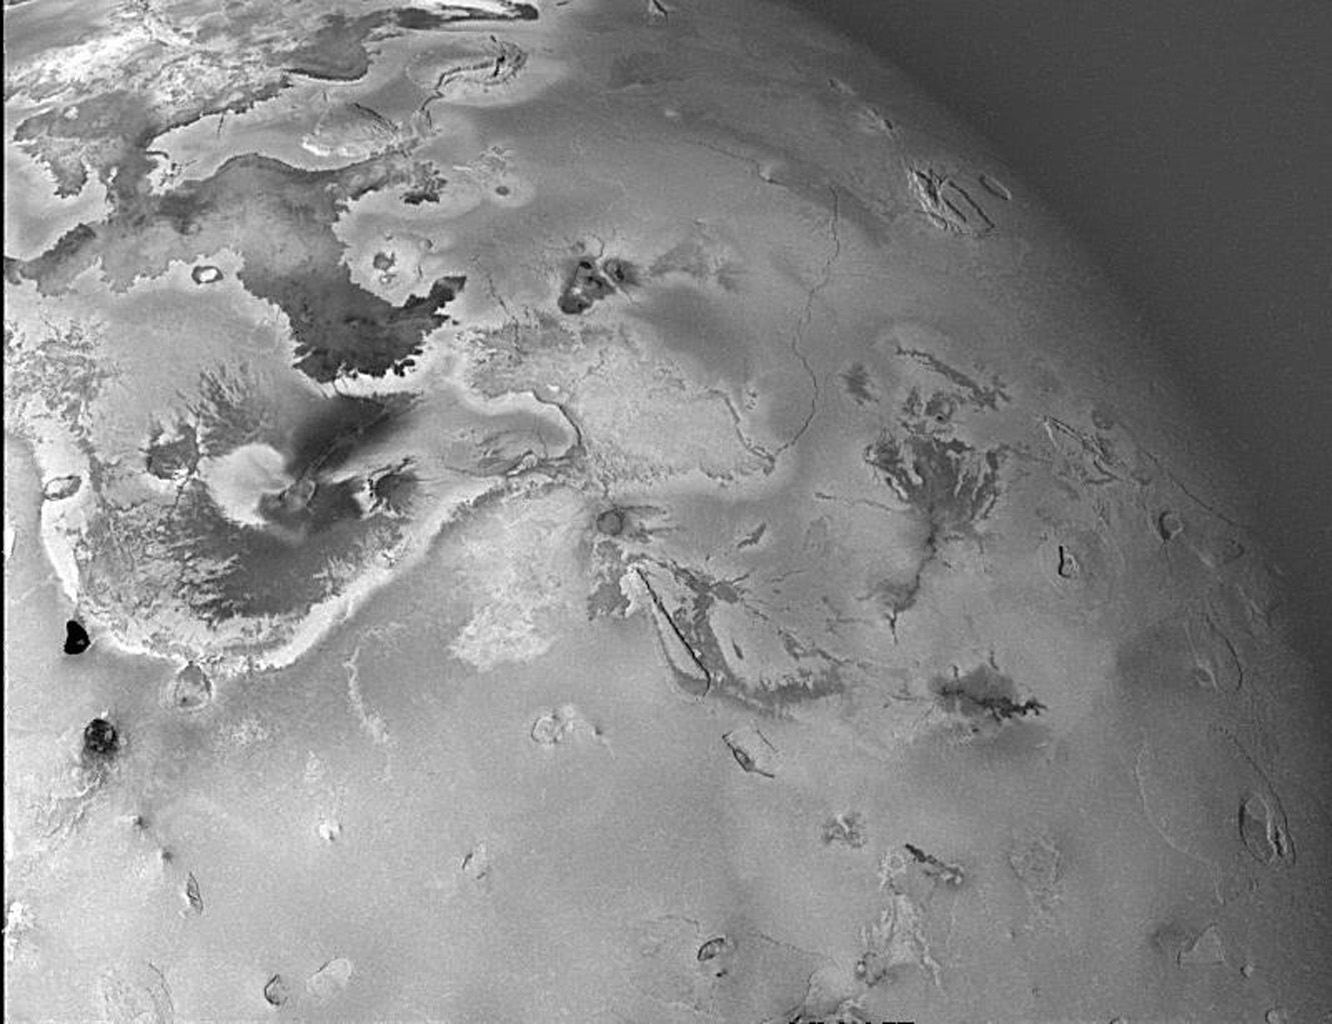 Shown here is one of the topographic mapping images of Jupiter's moon Io (Latitude: +2 to +65 degrees, Longitude: 150 to 223 degrees) acquired by NASA's Galileo spacecraft, revealing a great variety of landforms.